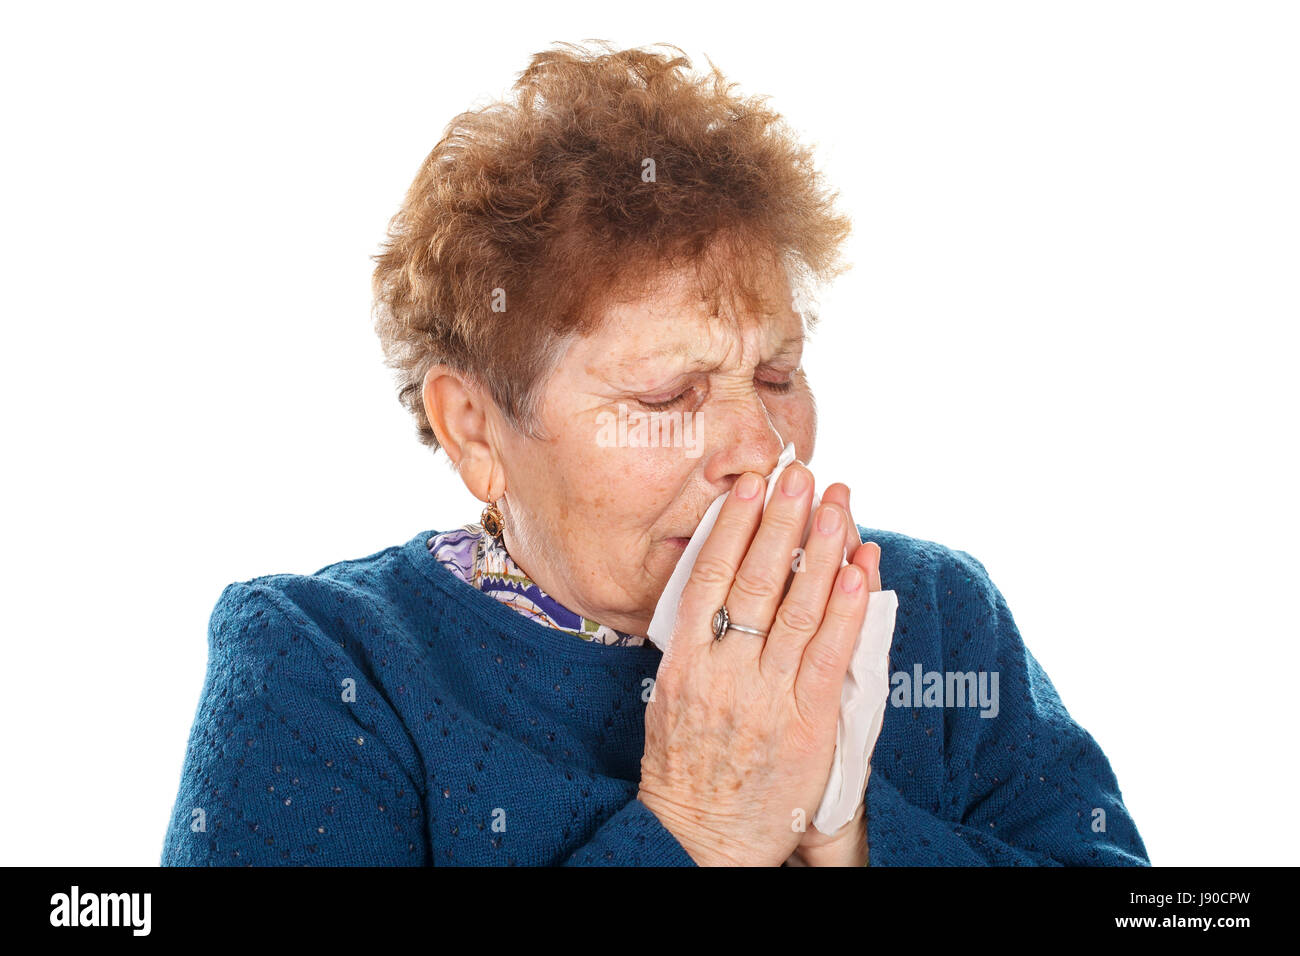 Picture of an elderly woman having a flu - isolated background - Stock Image